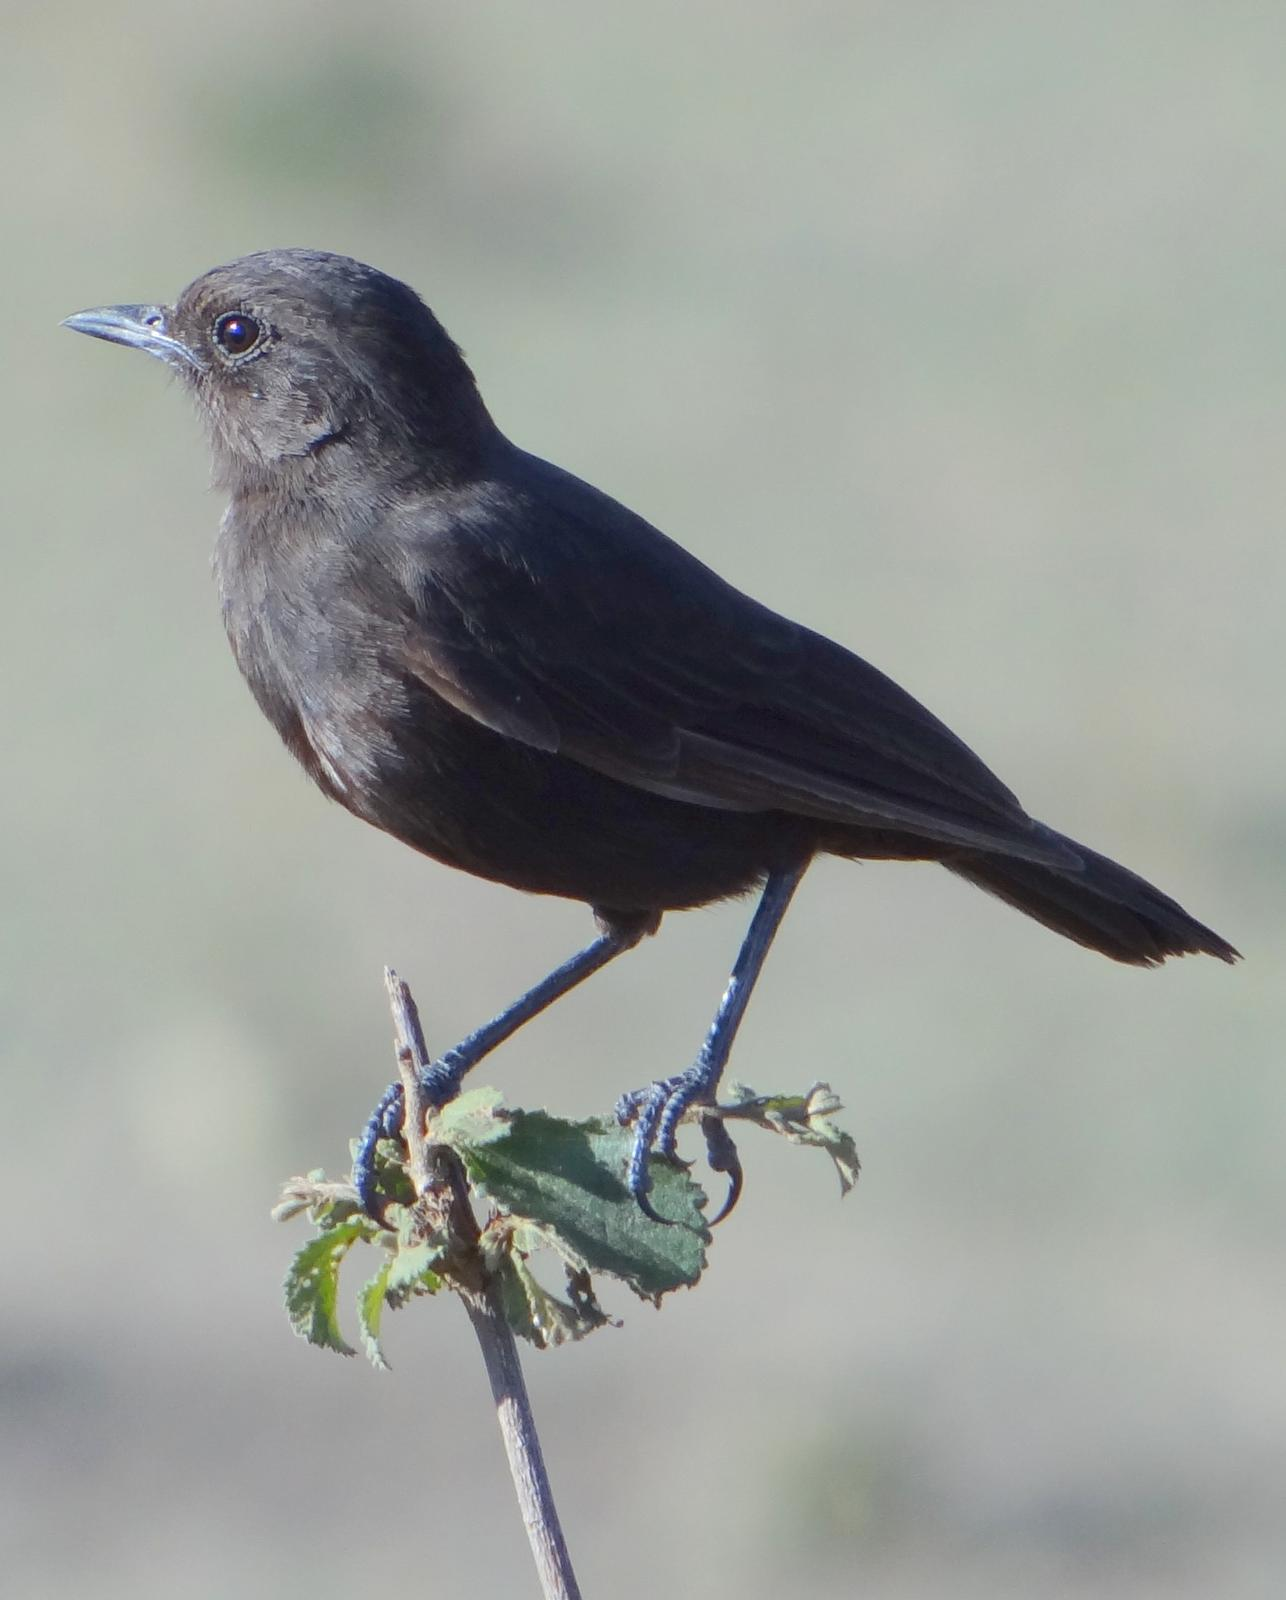 Sooty Chat Photo by Todd A. Watkins